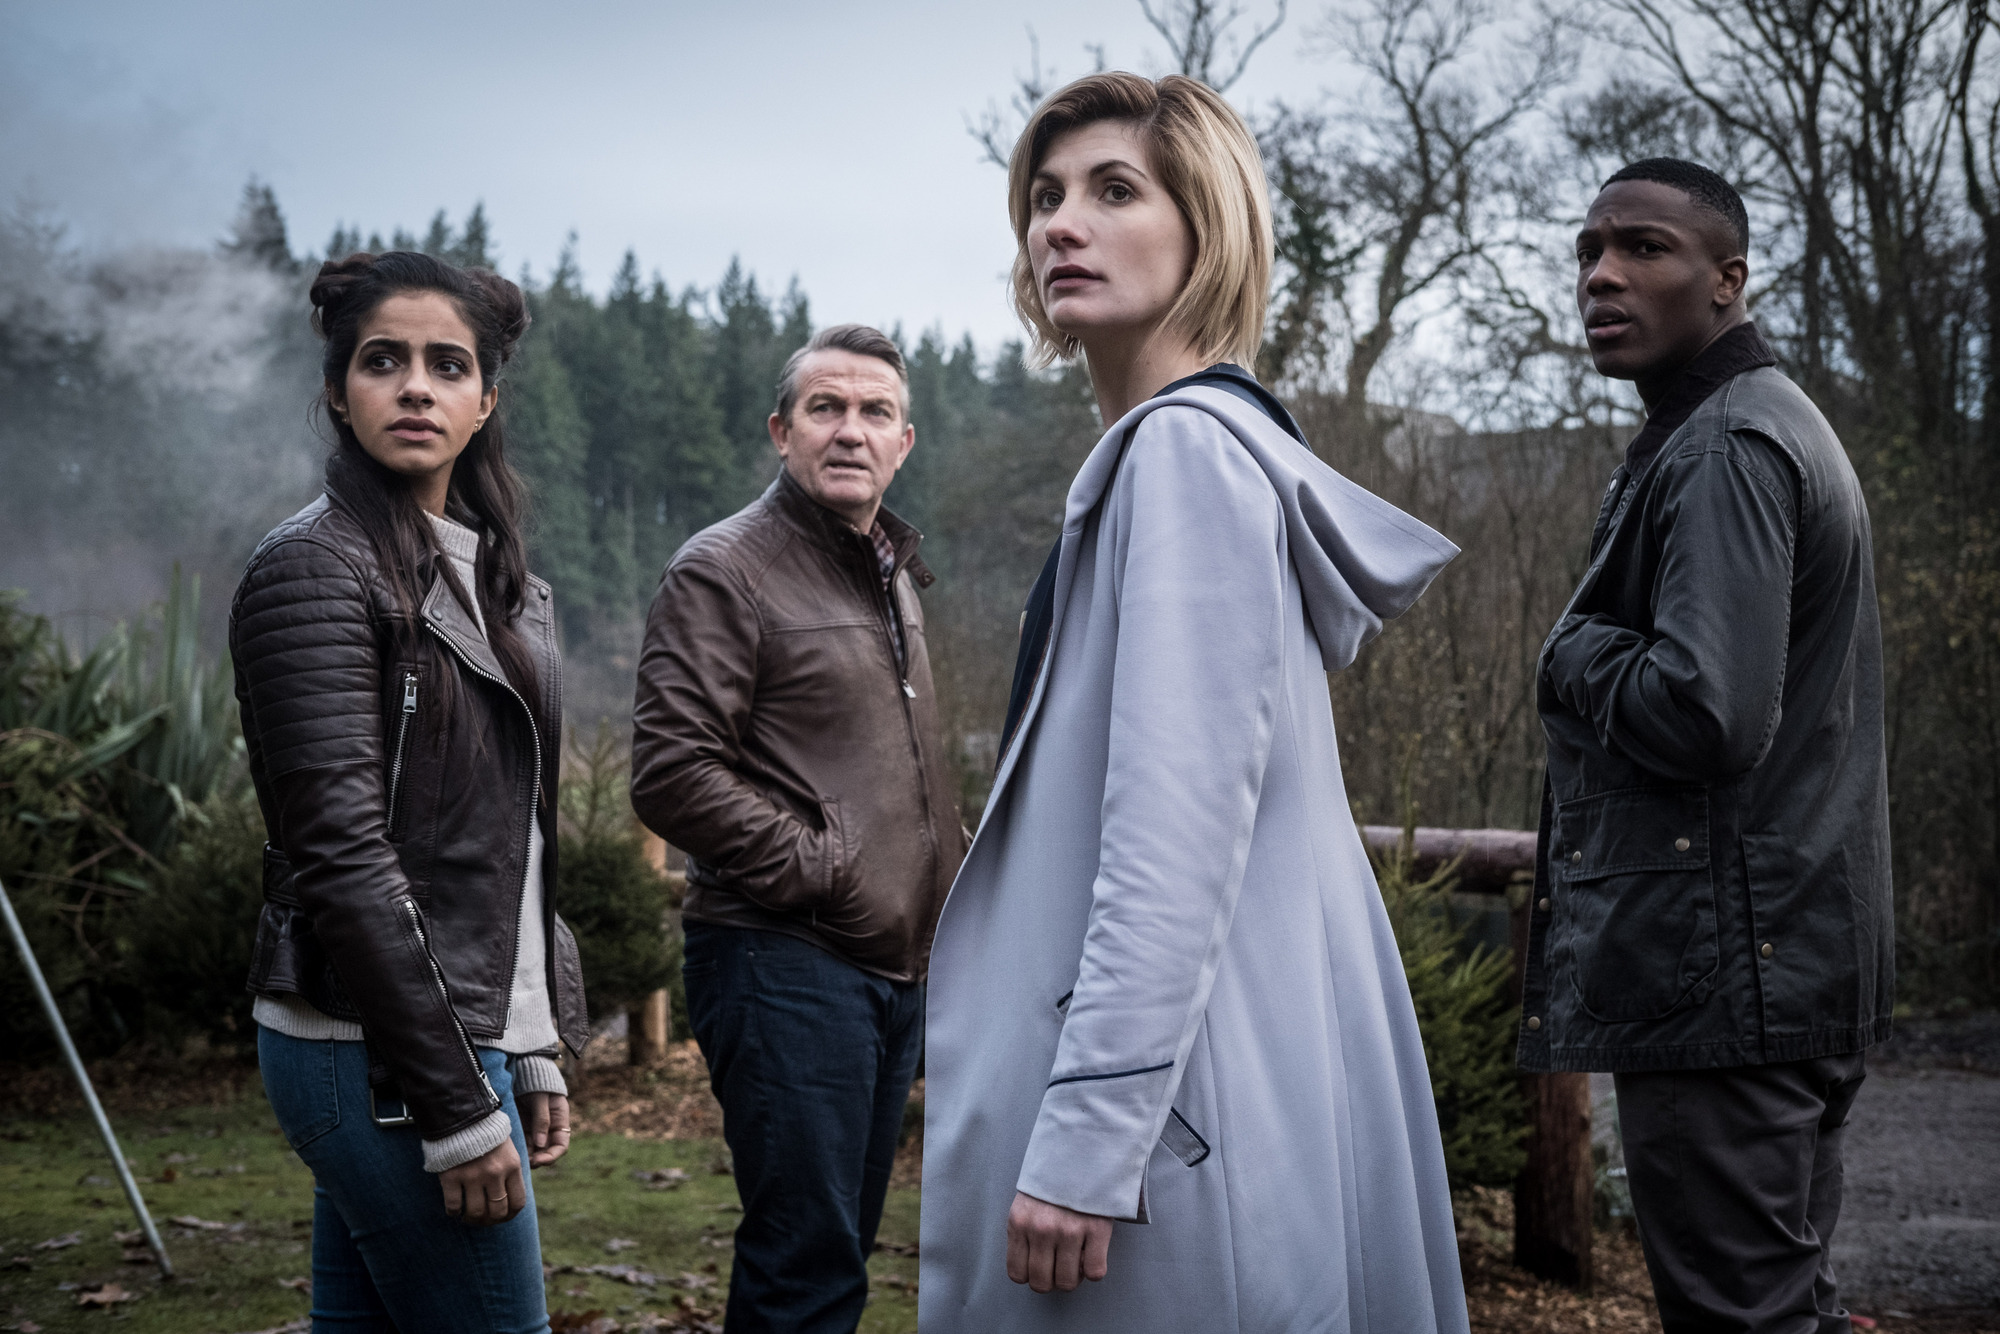 gorillagroup doctor who s11 pic